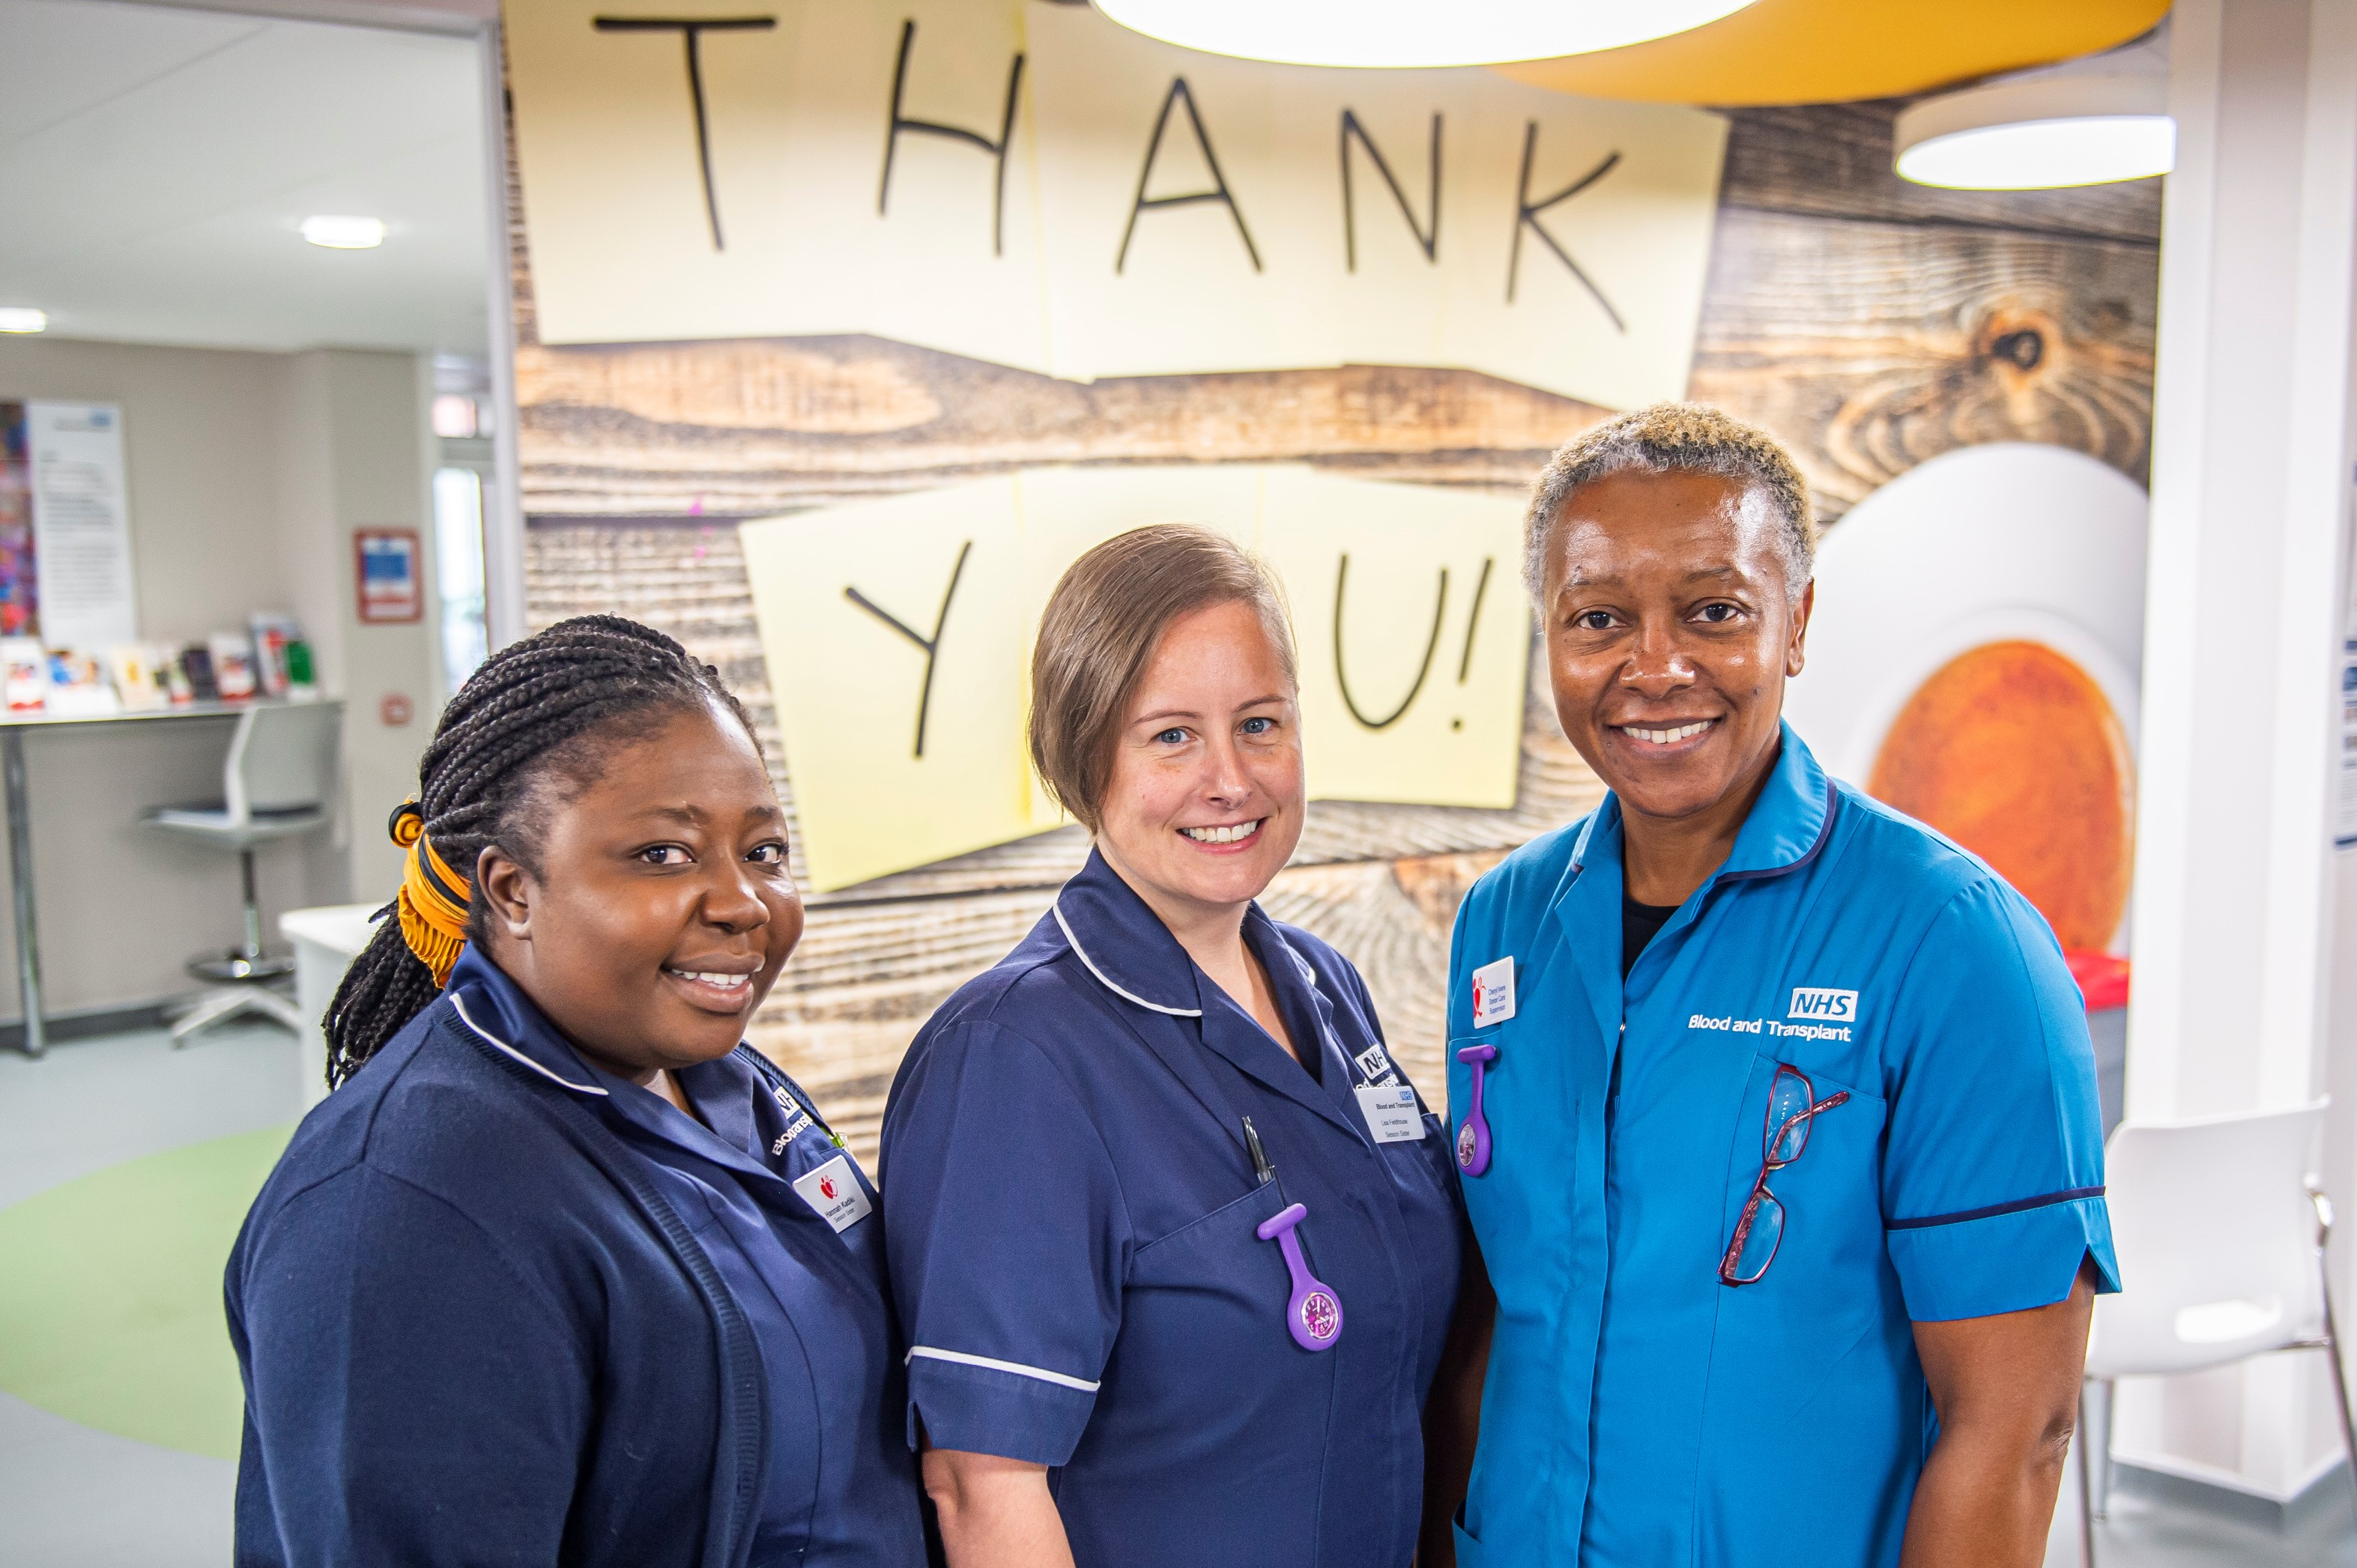 Three donors carers in front of a thank you sign